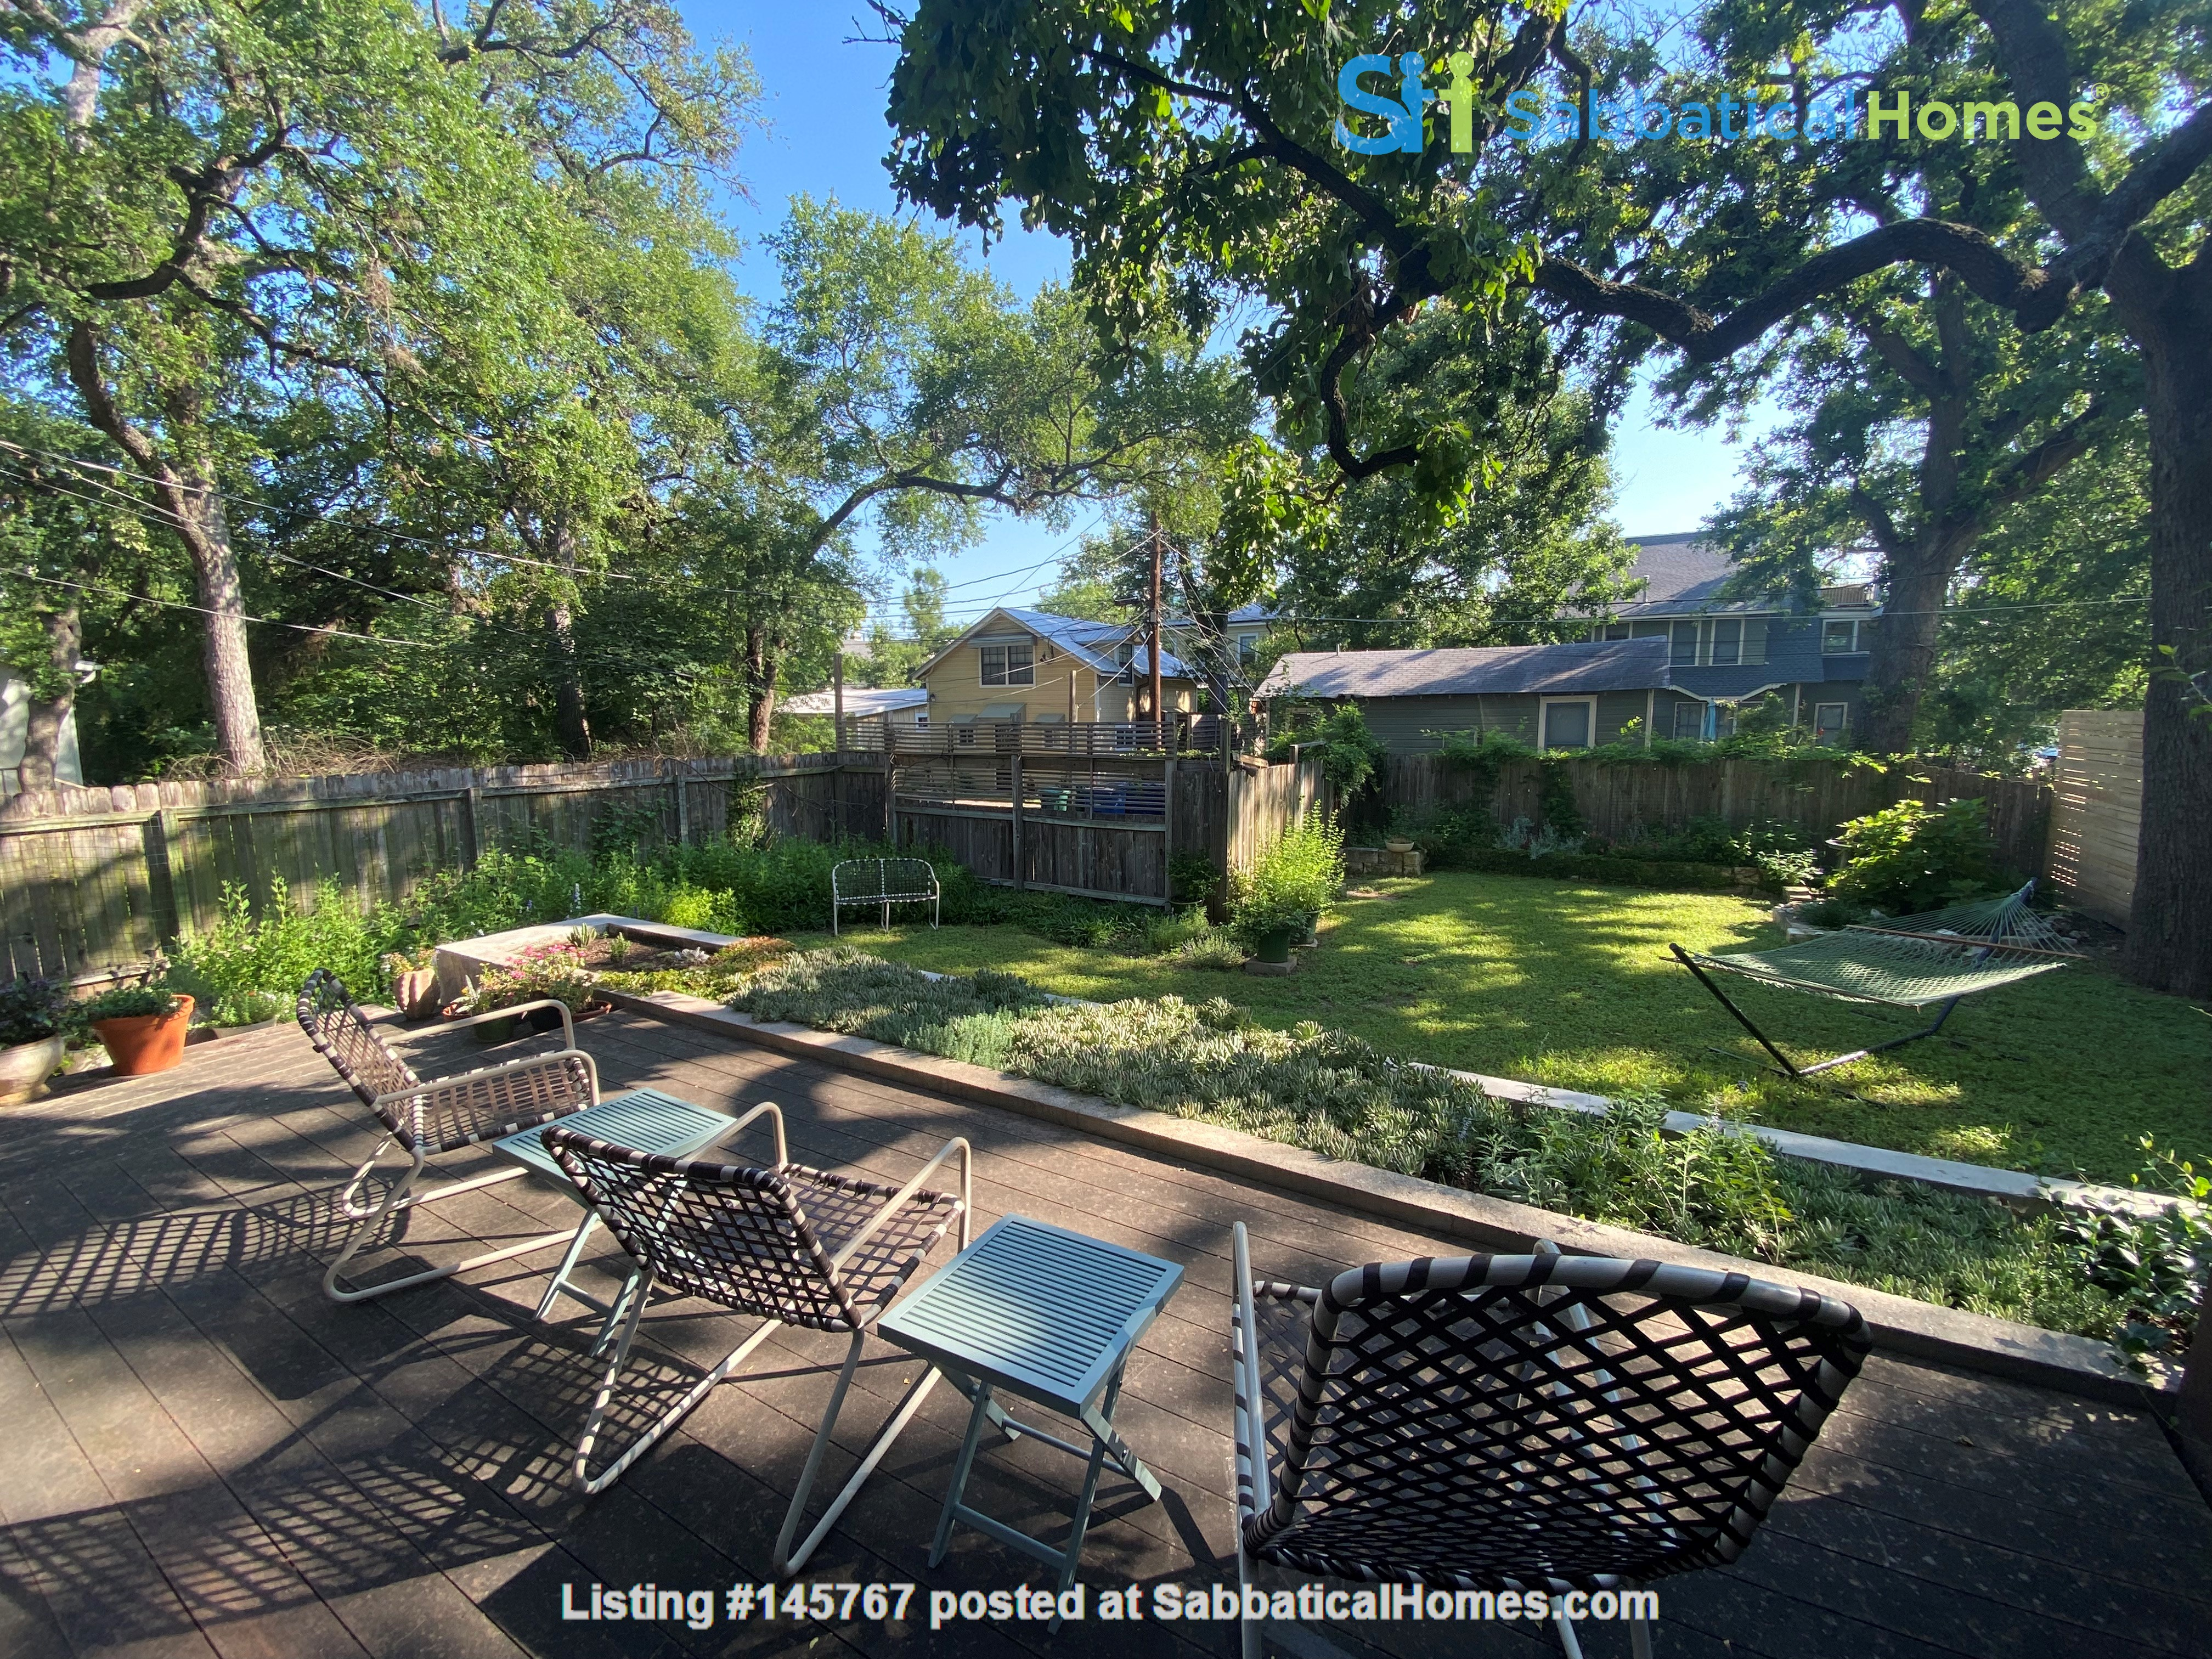 Beautiful 1920s Craftsman House (furnished, home share) Home Rental in Austin 5